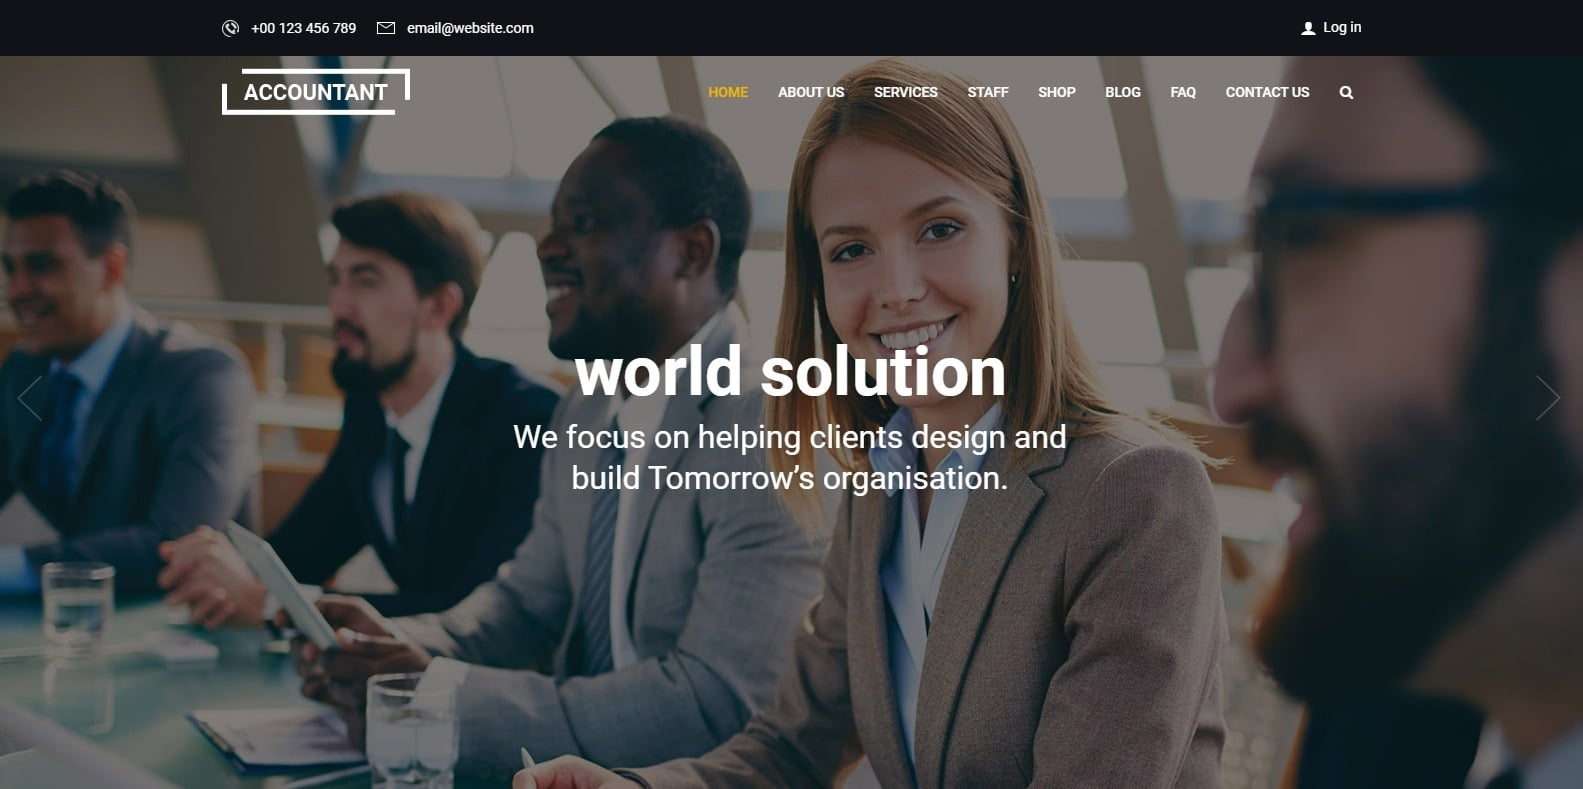 accountant-accounting-website-template